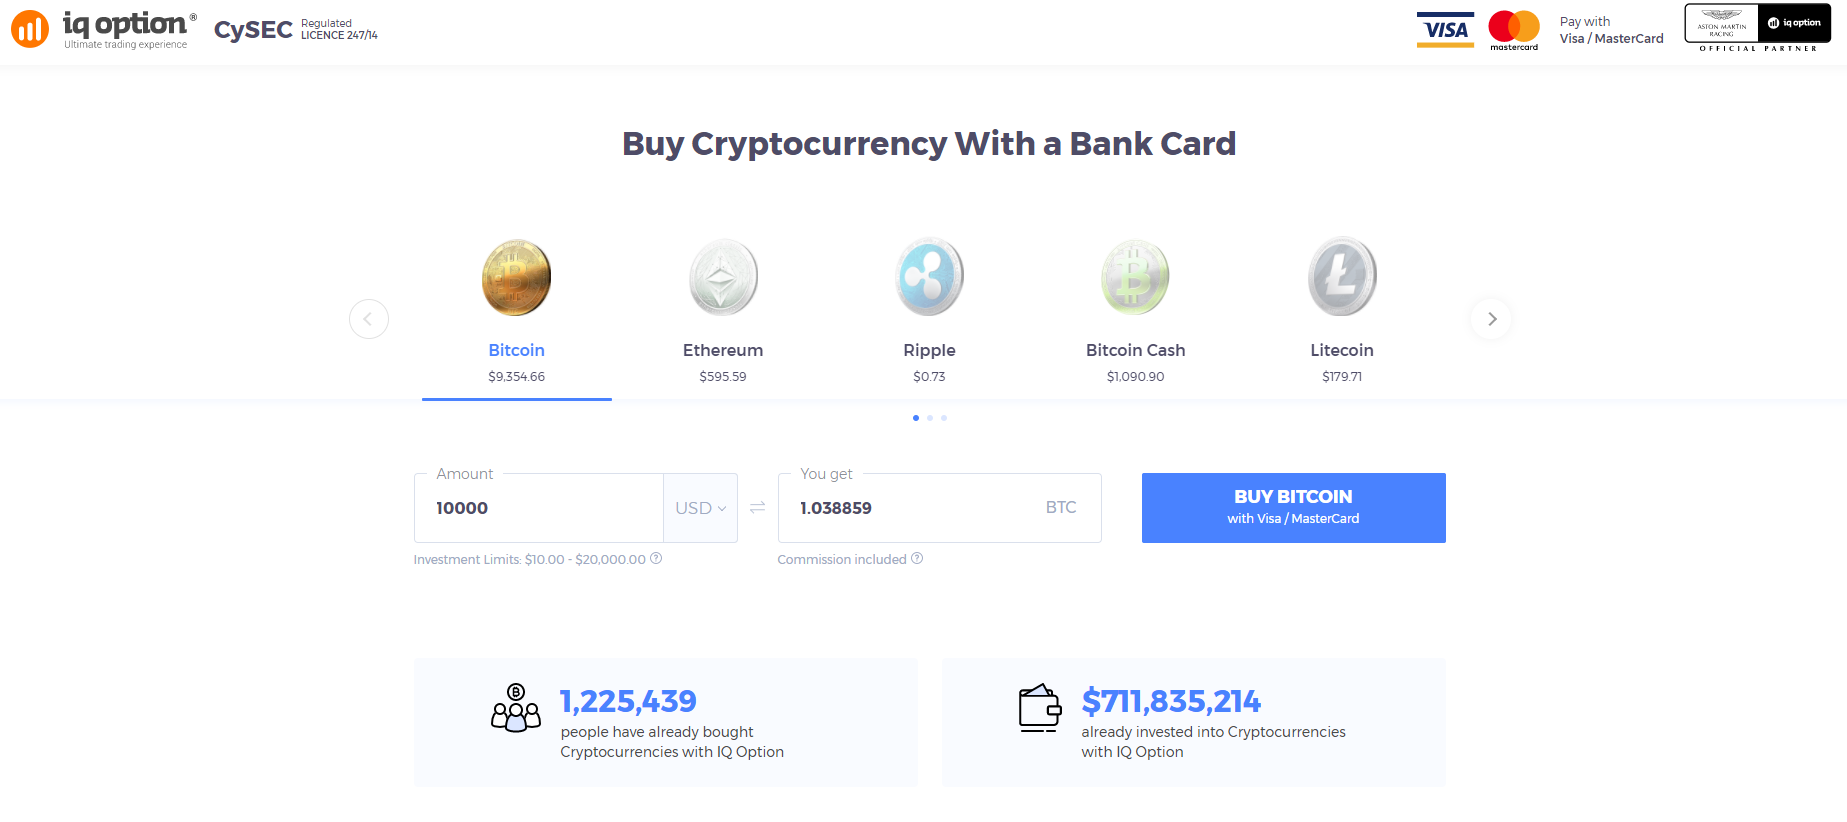 how to i buy cryptocurrency